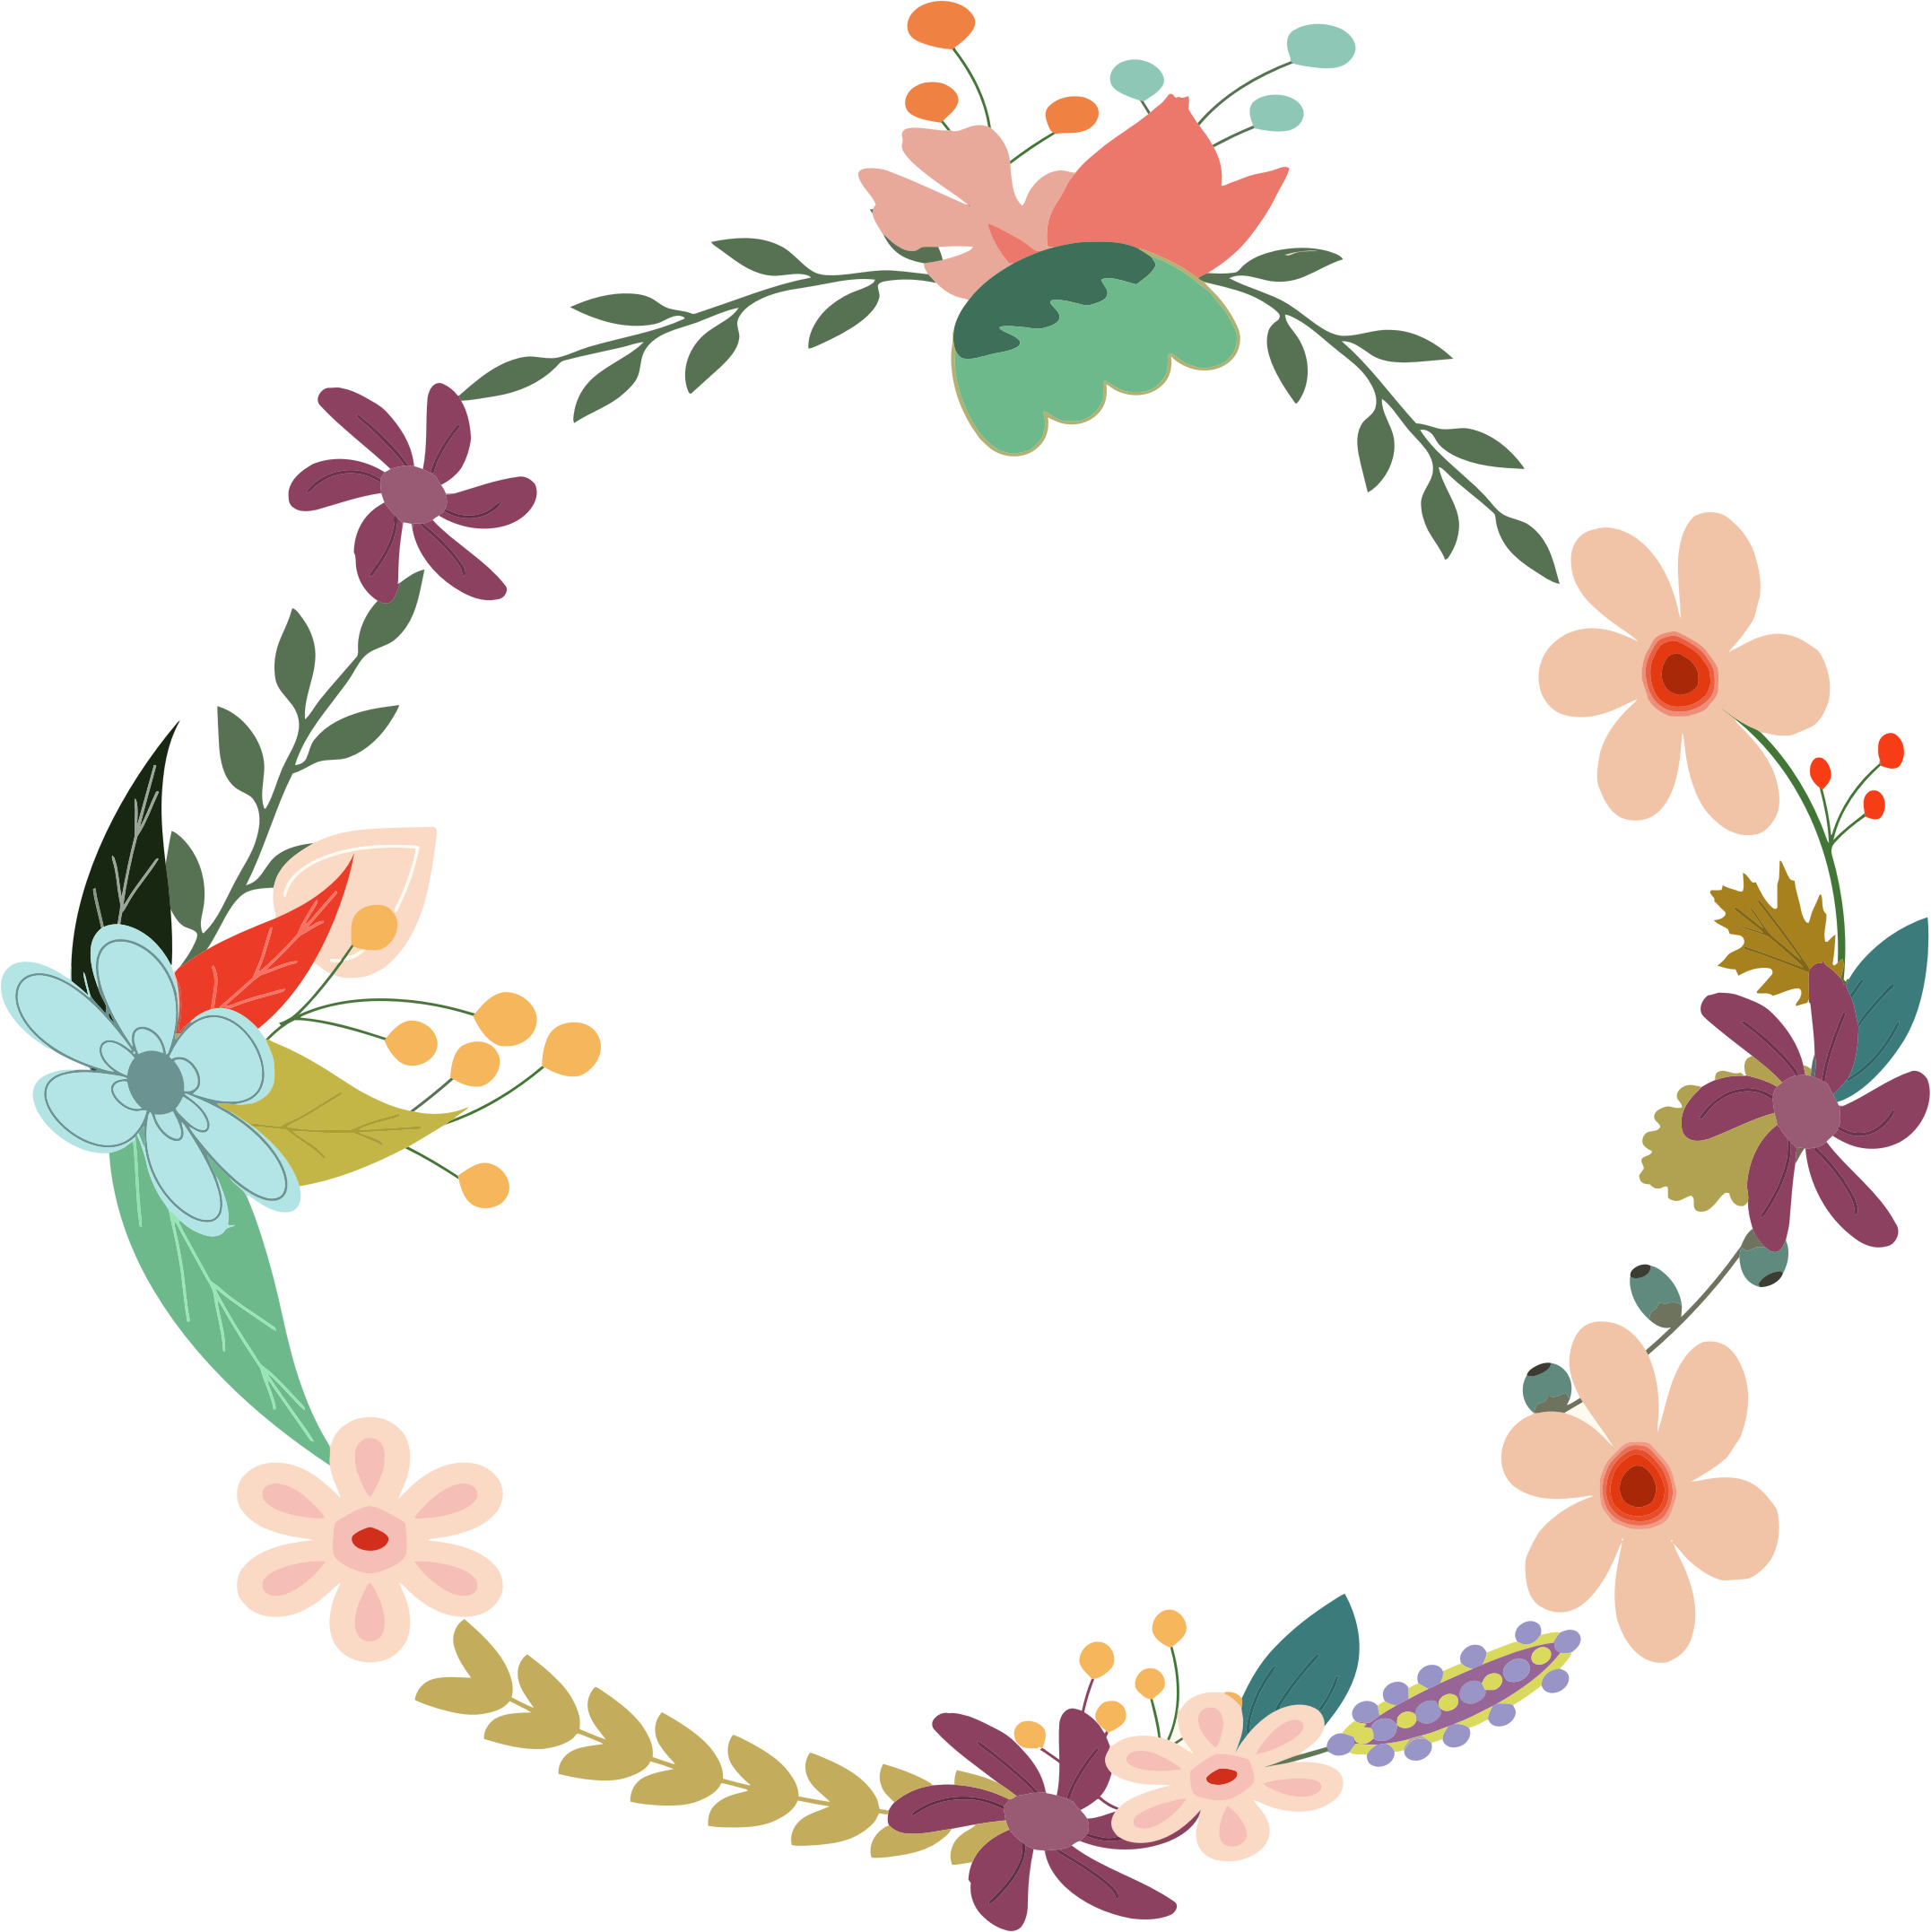 Vintage Floral Wreath by GDJ, From PDP, with love., on